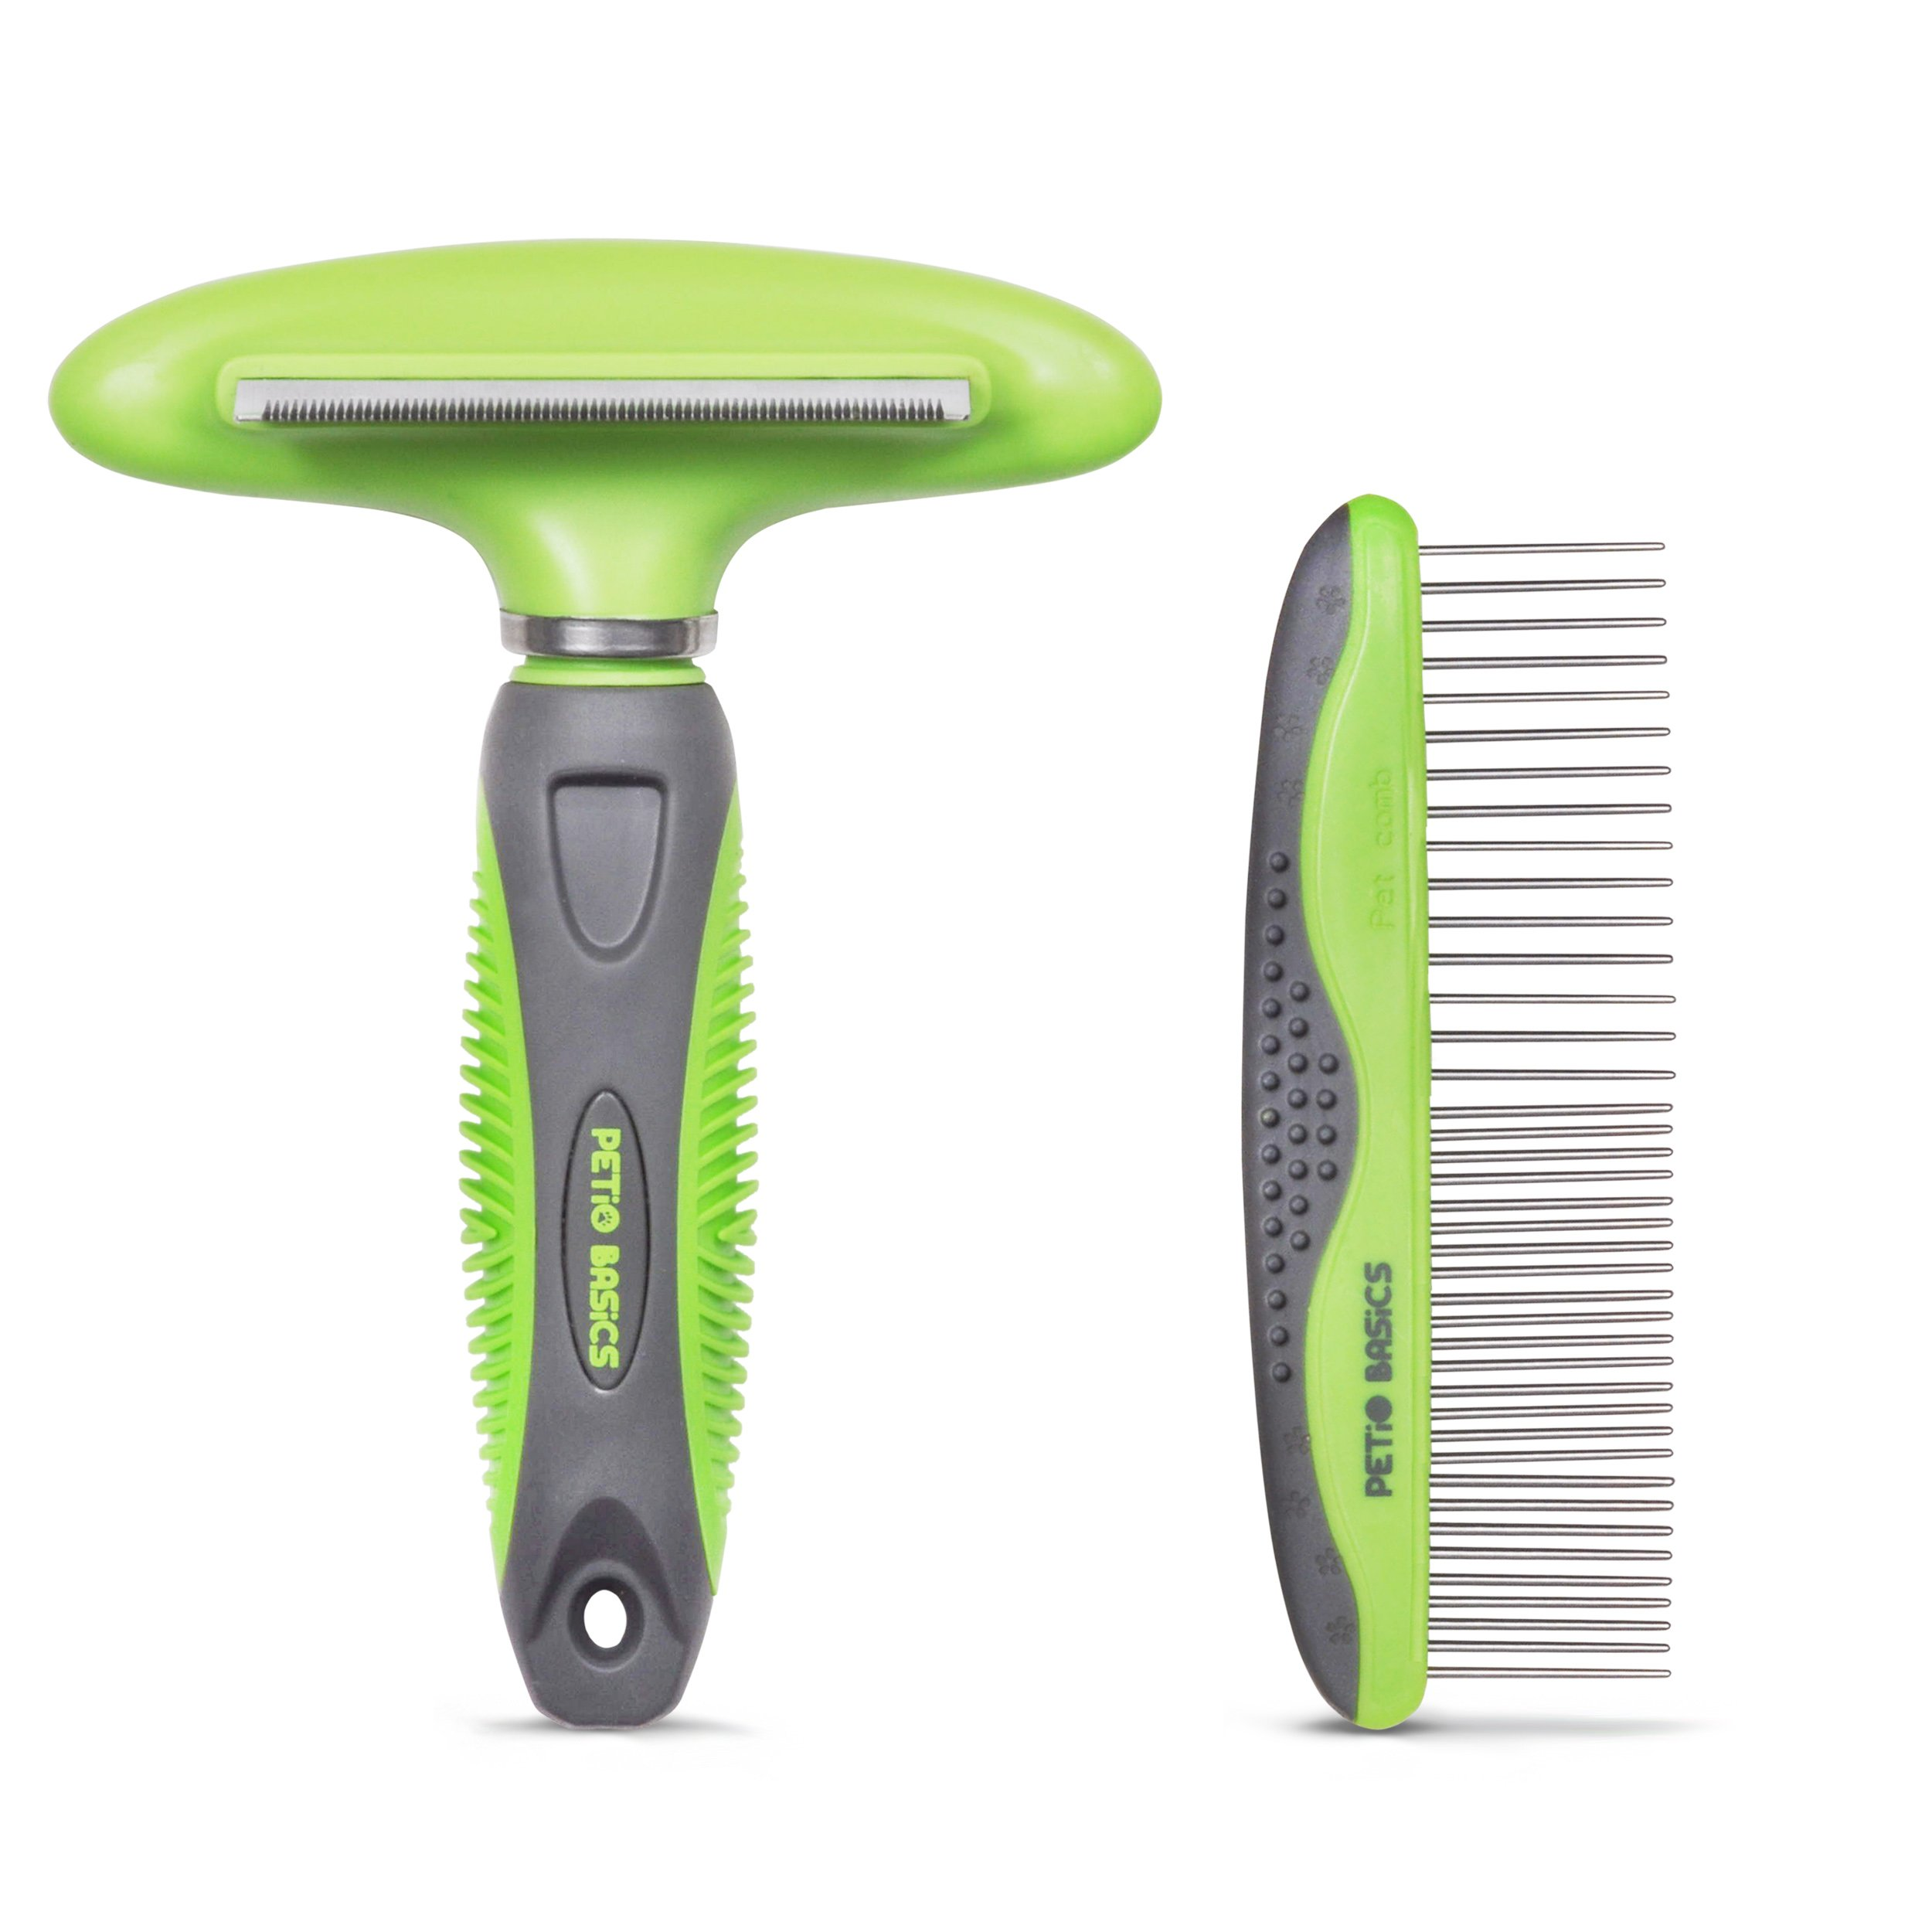 Pet Grooming Tools 2-Piece Set by Petio Basics Includes 2-in-1 Undercoat Deshedding Rake and Comb for Dogs and Cats